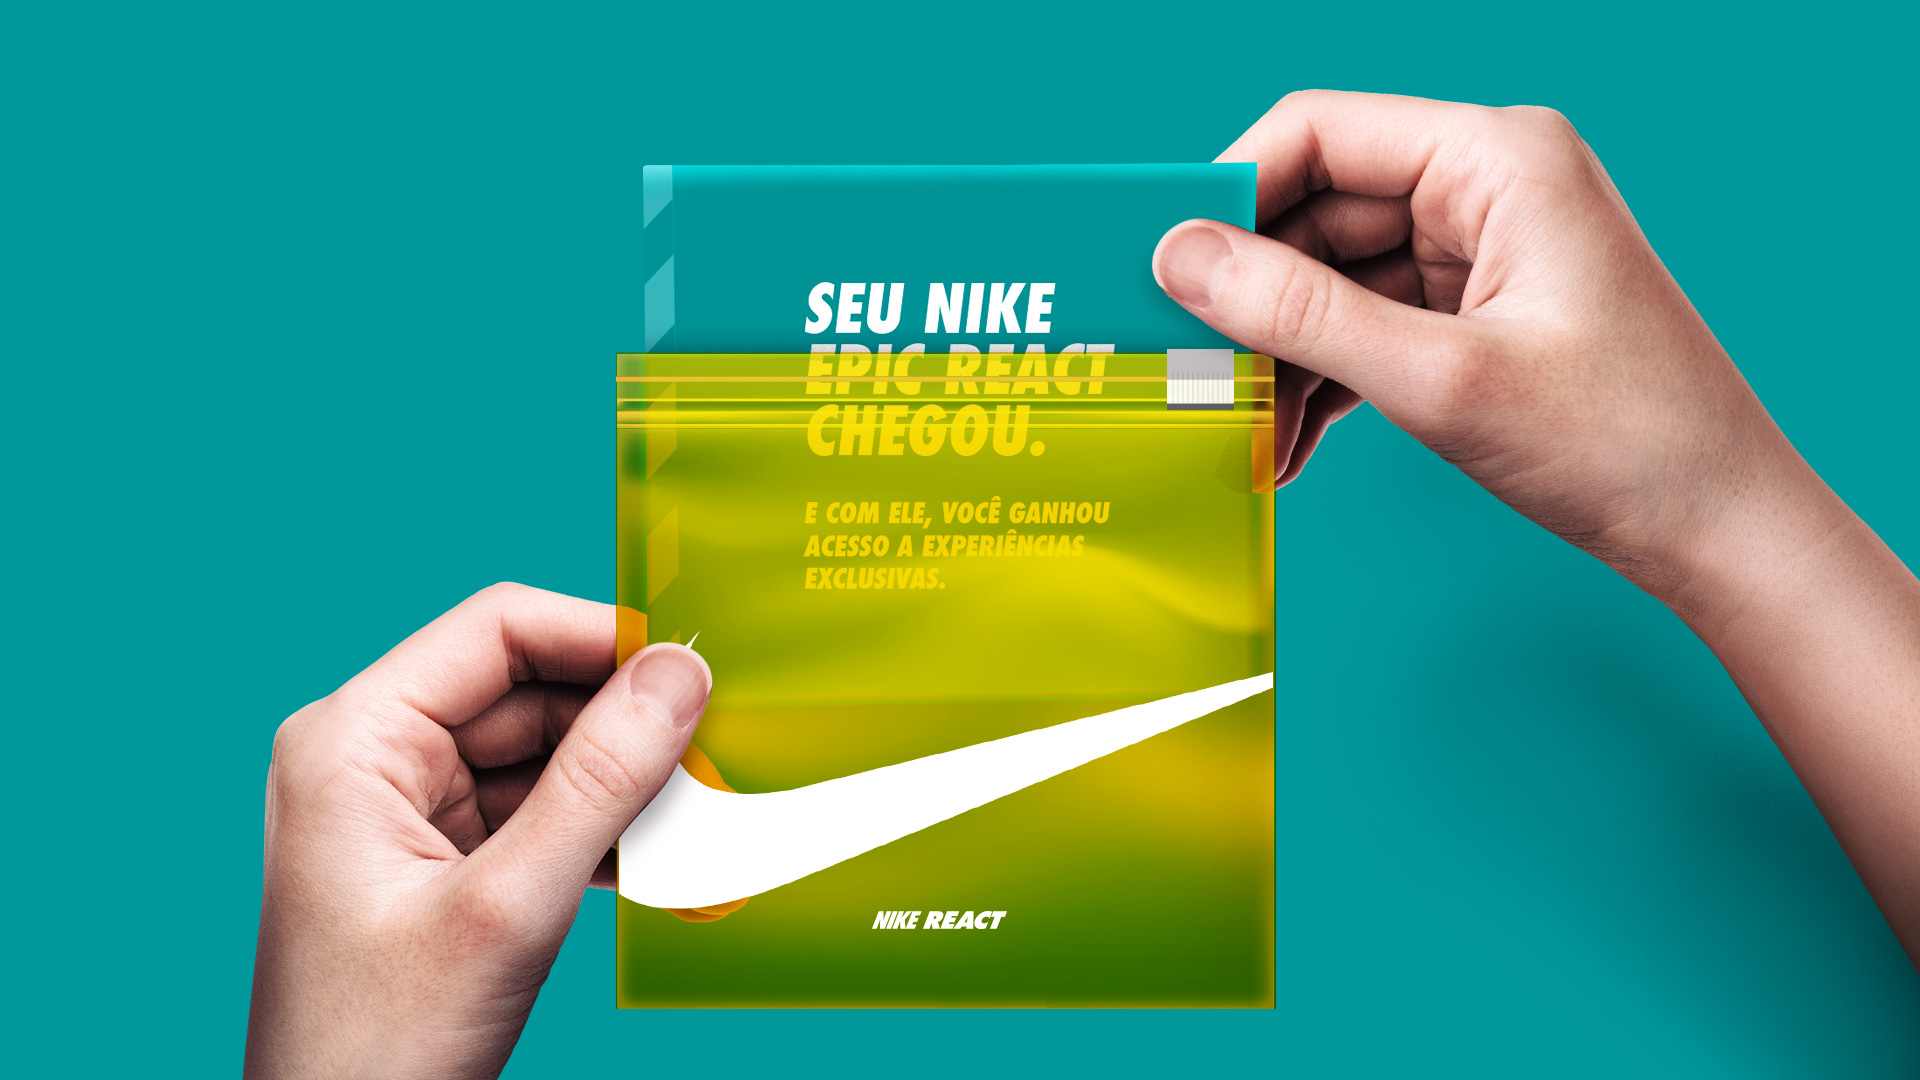 03_[NIKE]-SO-VAI-SP-MAP-Ziplok3.jpg